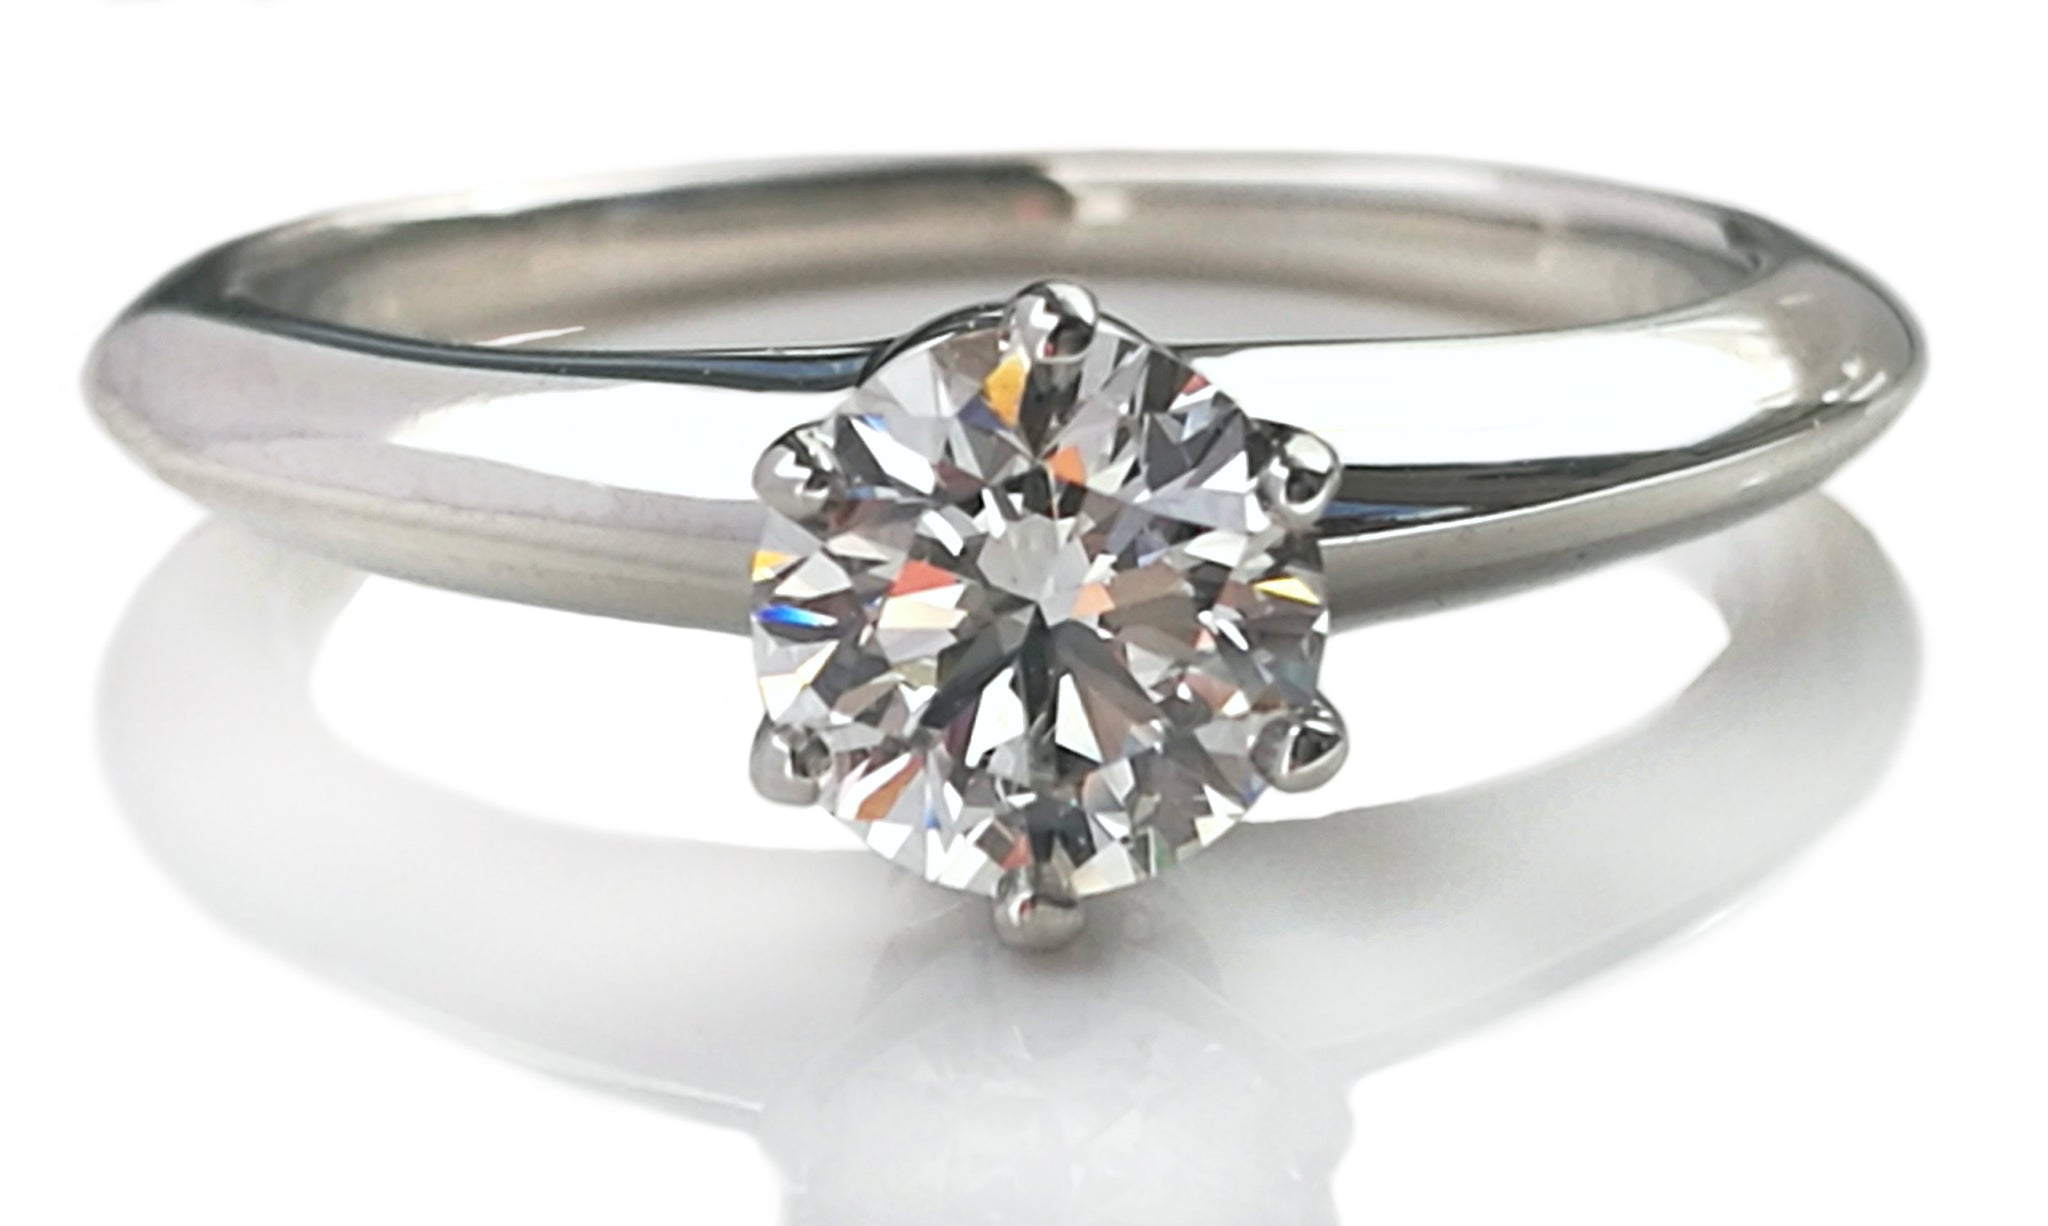 Tiffany & Co. 0.54ct G/VS2 Round Brilliant Diamond Engagement Ring